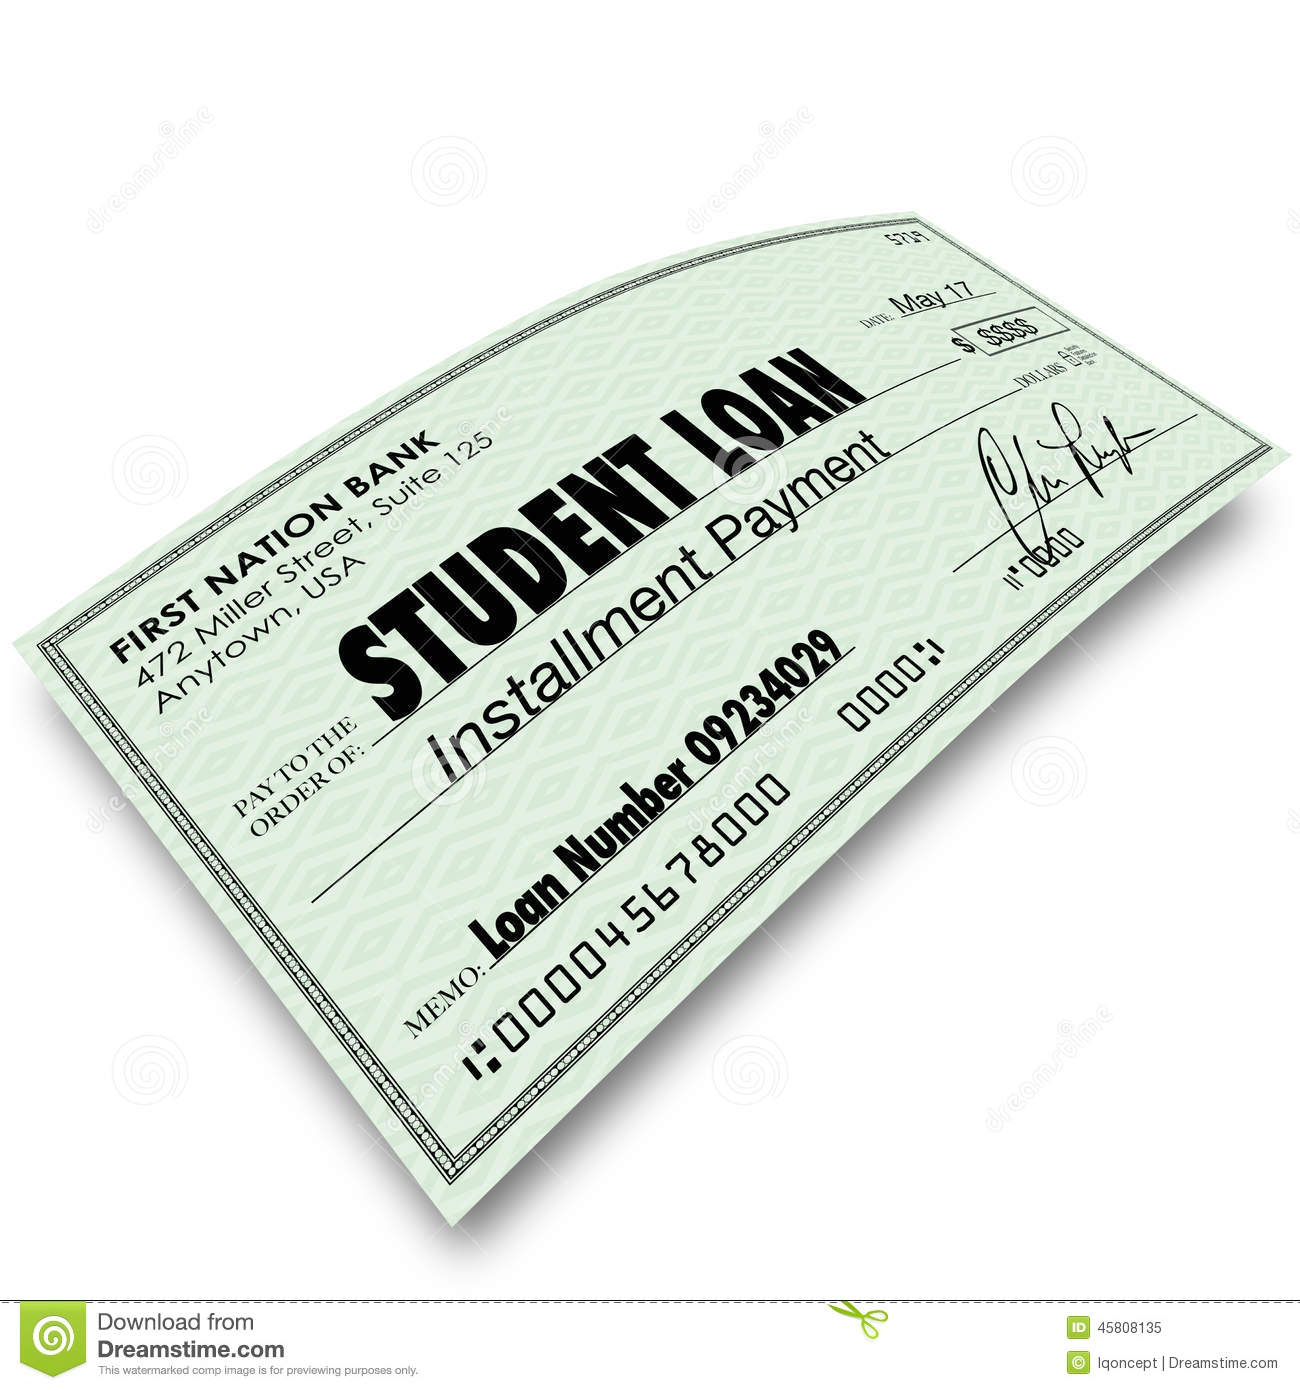 Student loan paid clipart clip art royalty free library Student loan paid clipart - ClipartFest clip art royalty free library